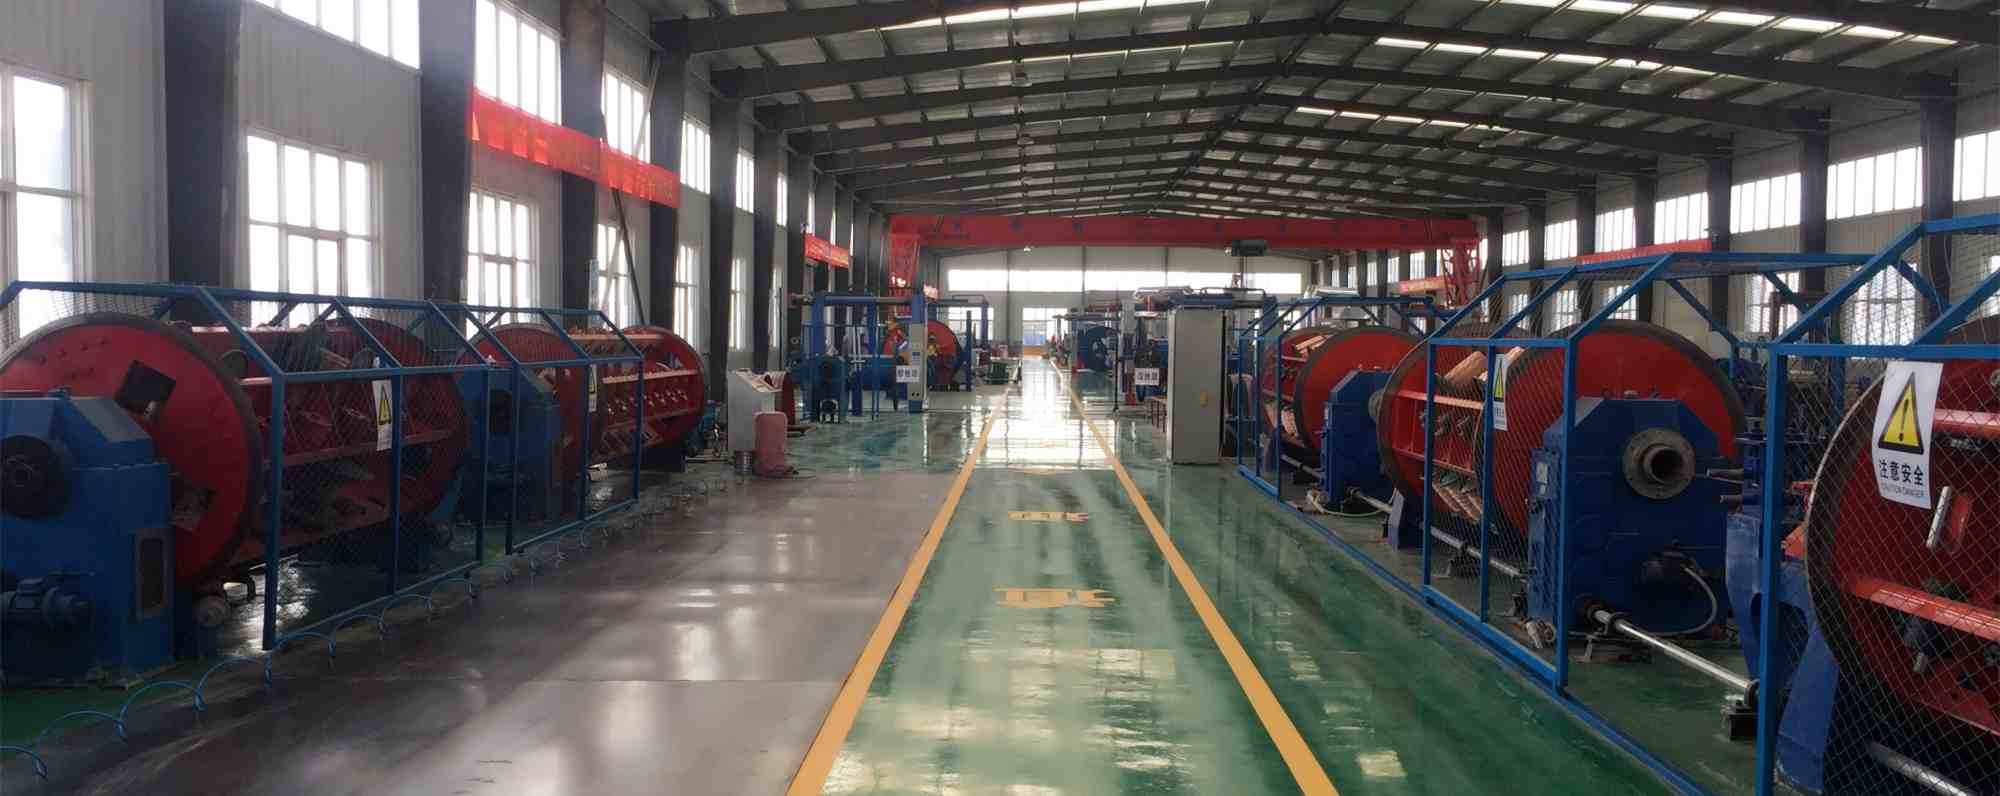 14 gauge solid core copper wire factory - Huadong